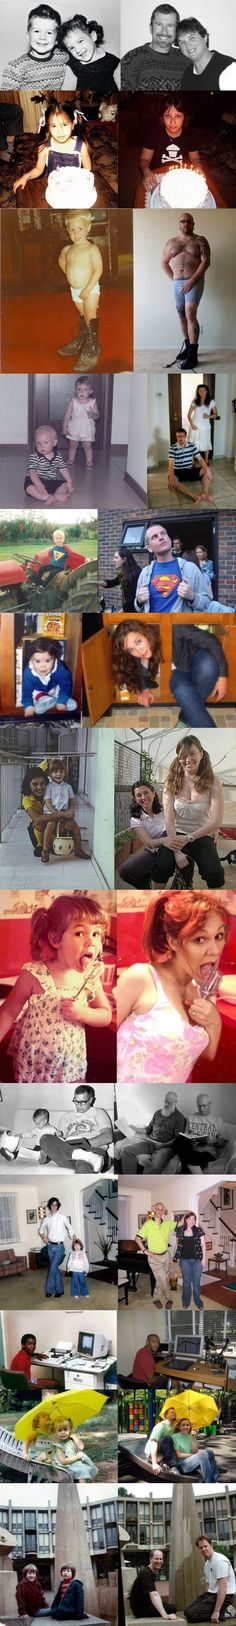 Recreating childhood photos! Love this.